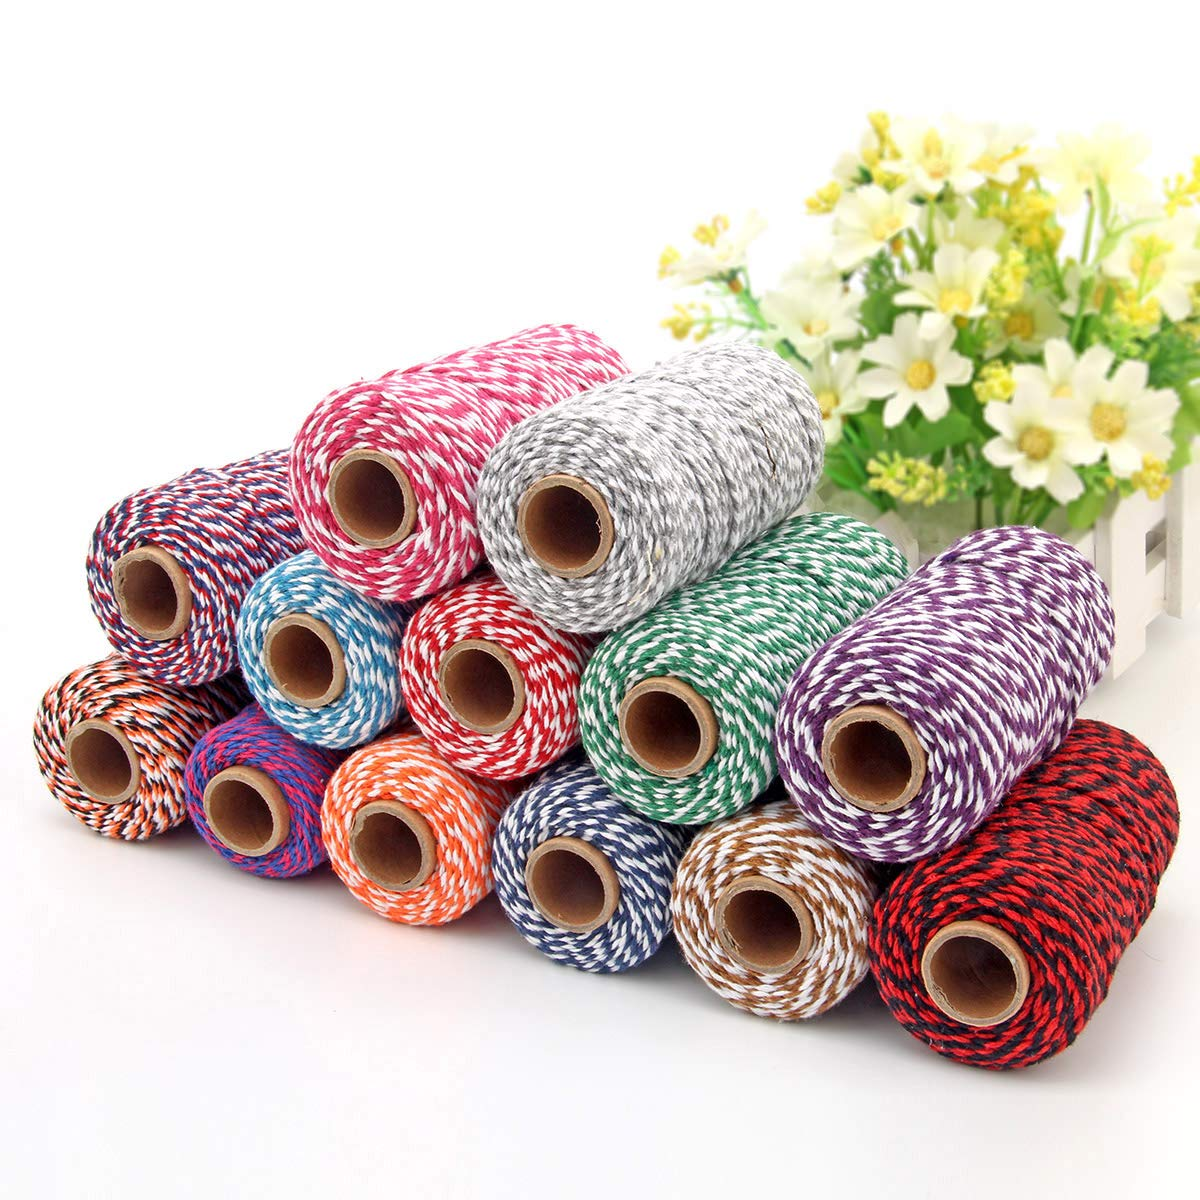 2 Roll Cotton String Rope 656 Feet Yzsfirm Gold Wire and Black 2mm Thick Bakers Twine for Crafts Bundling